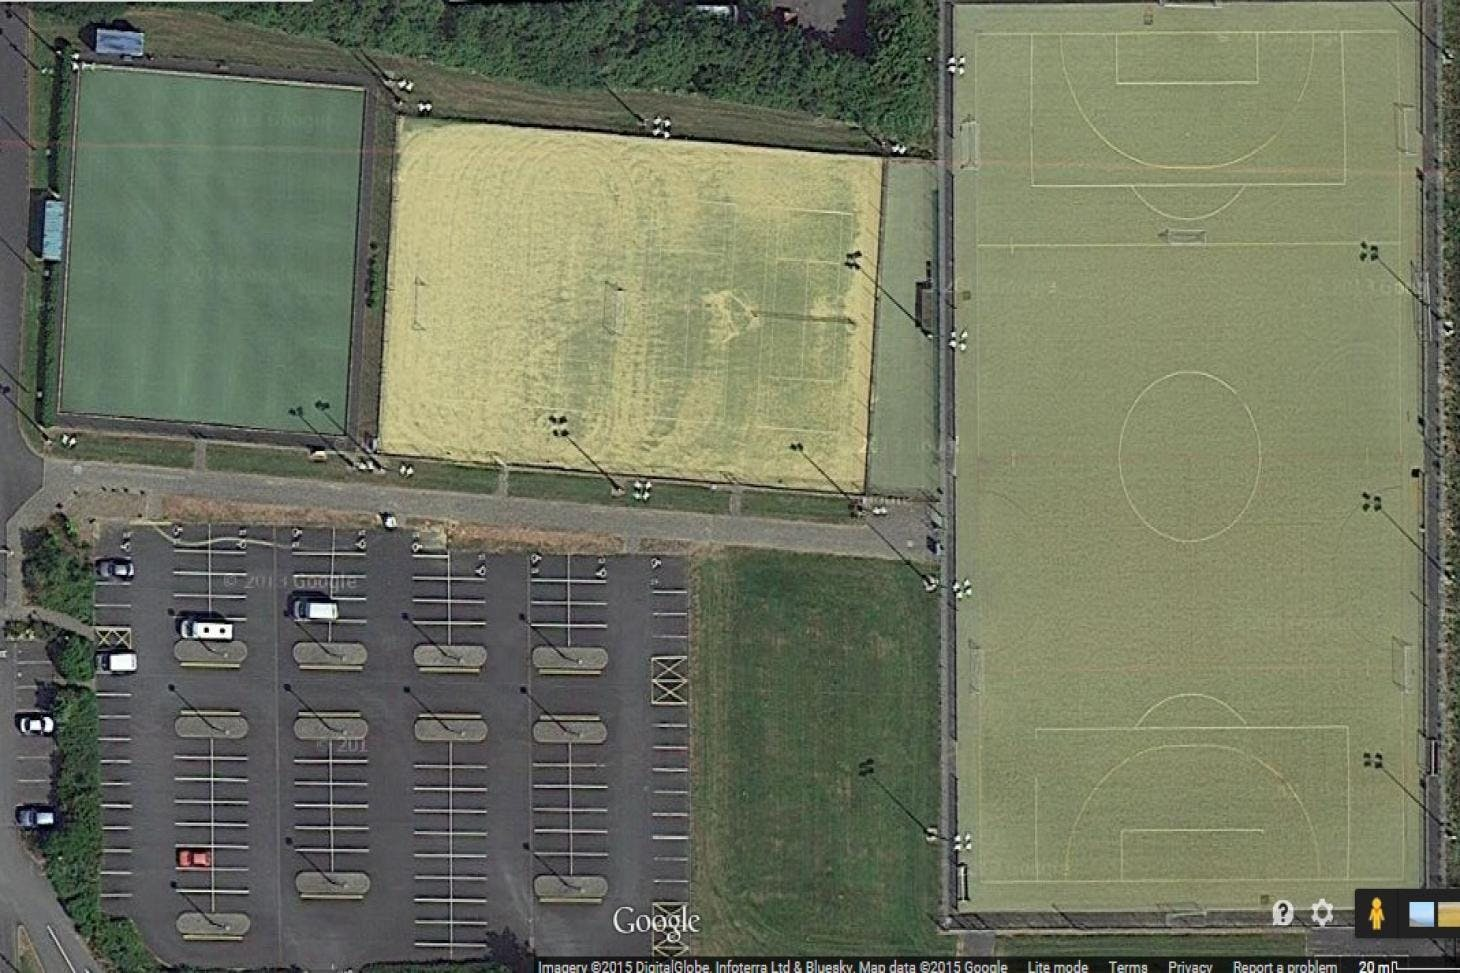 Sportslink 11 a side | Grass football pitch